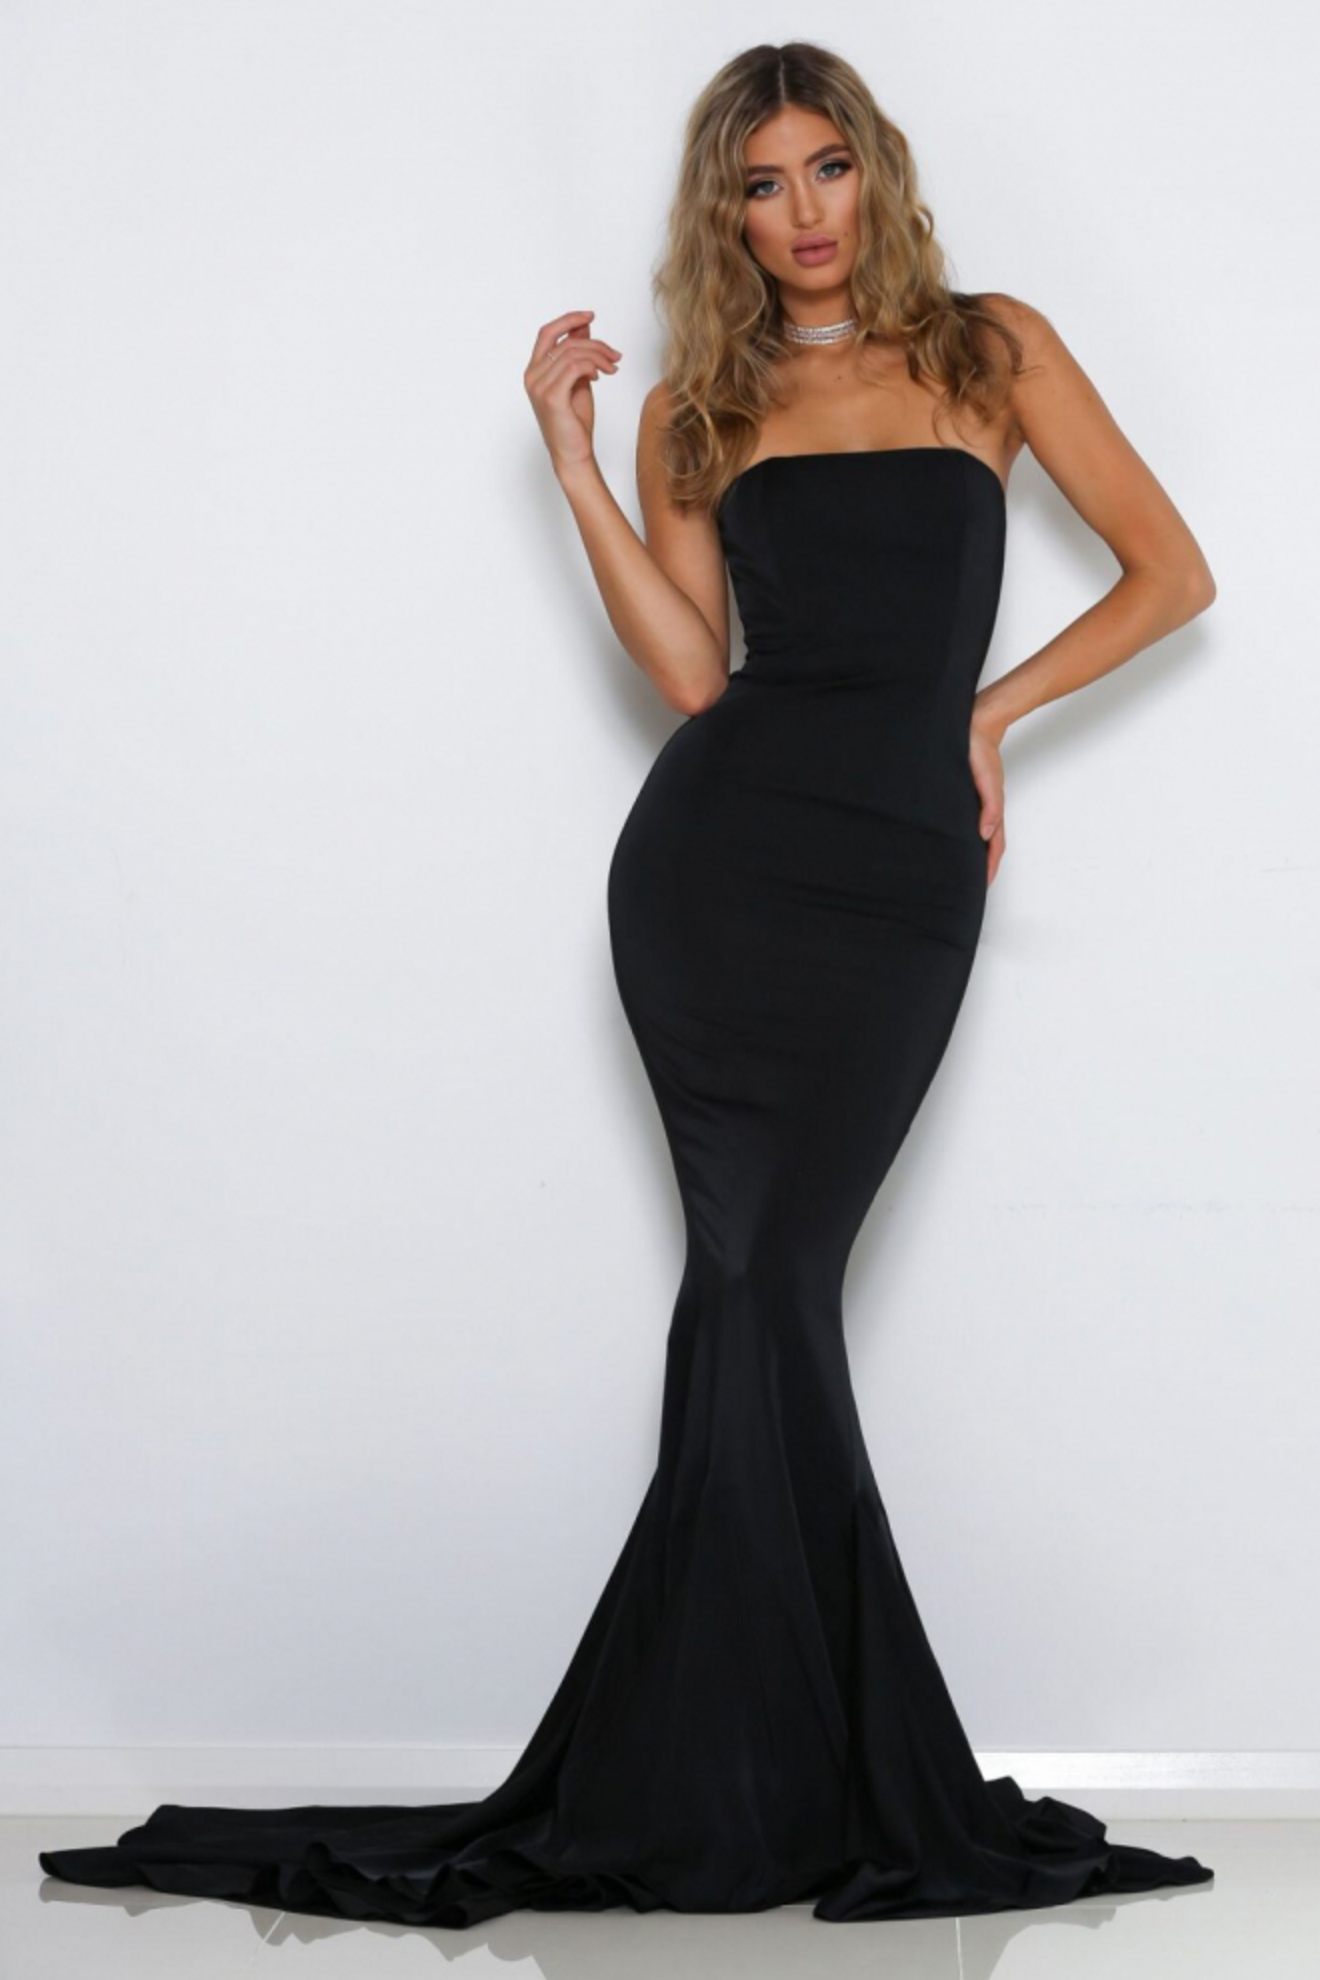 Absolute perfection! Step out in this gown to create your own ...